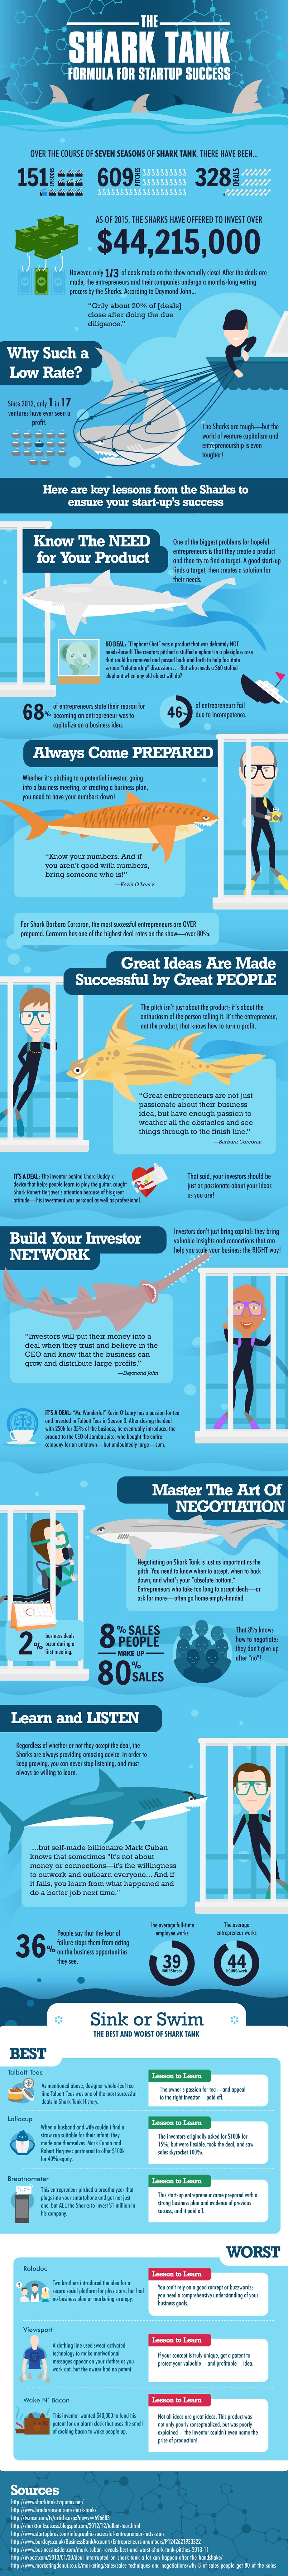 How to launch a successful startup infographic